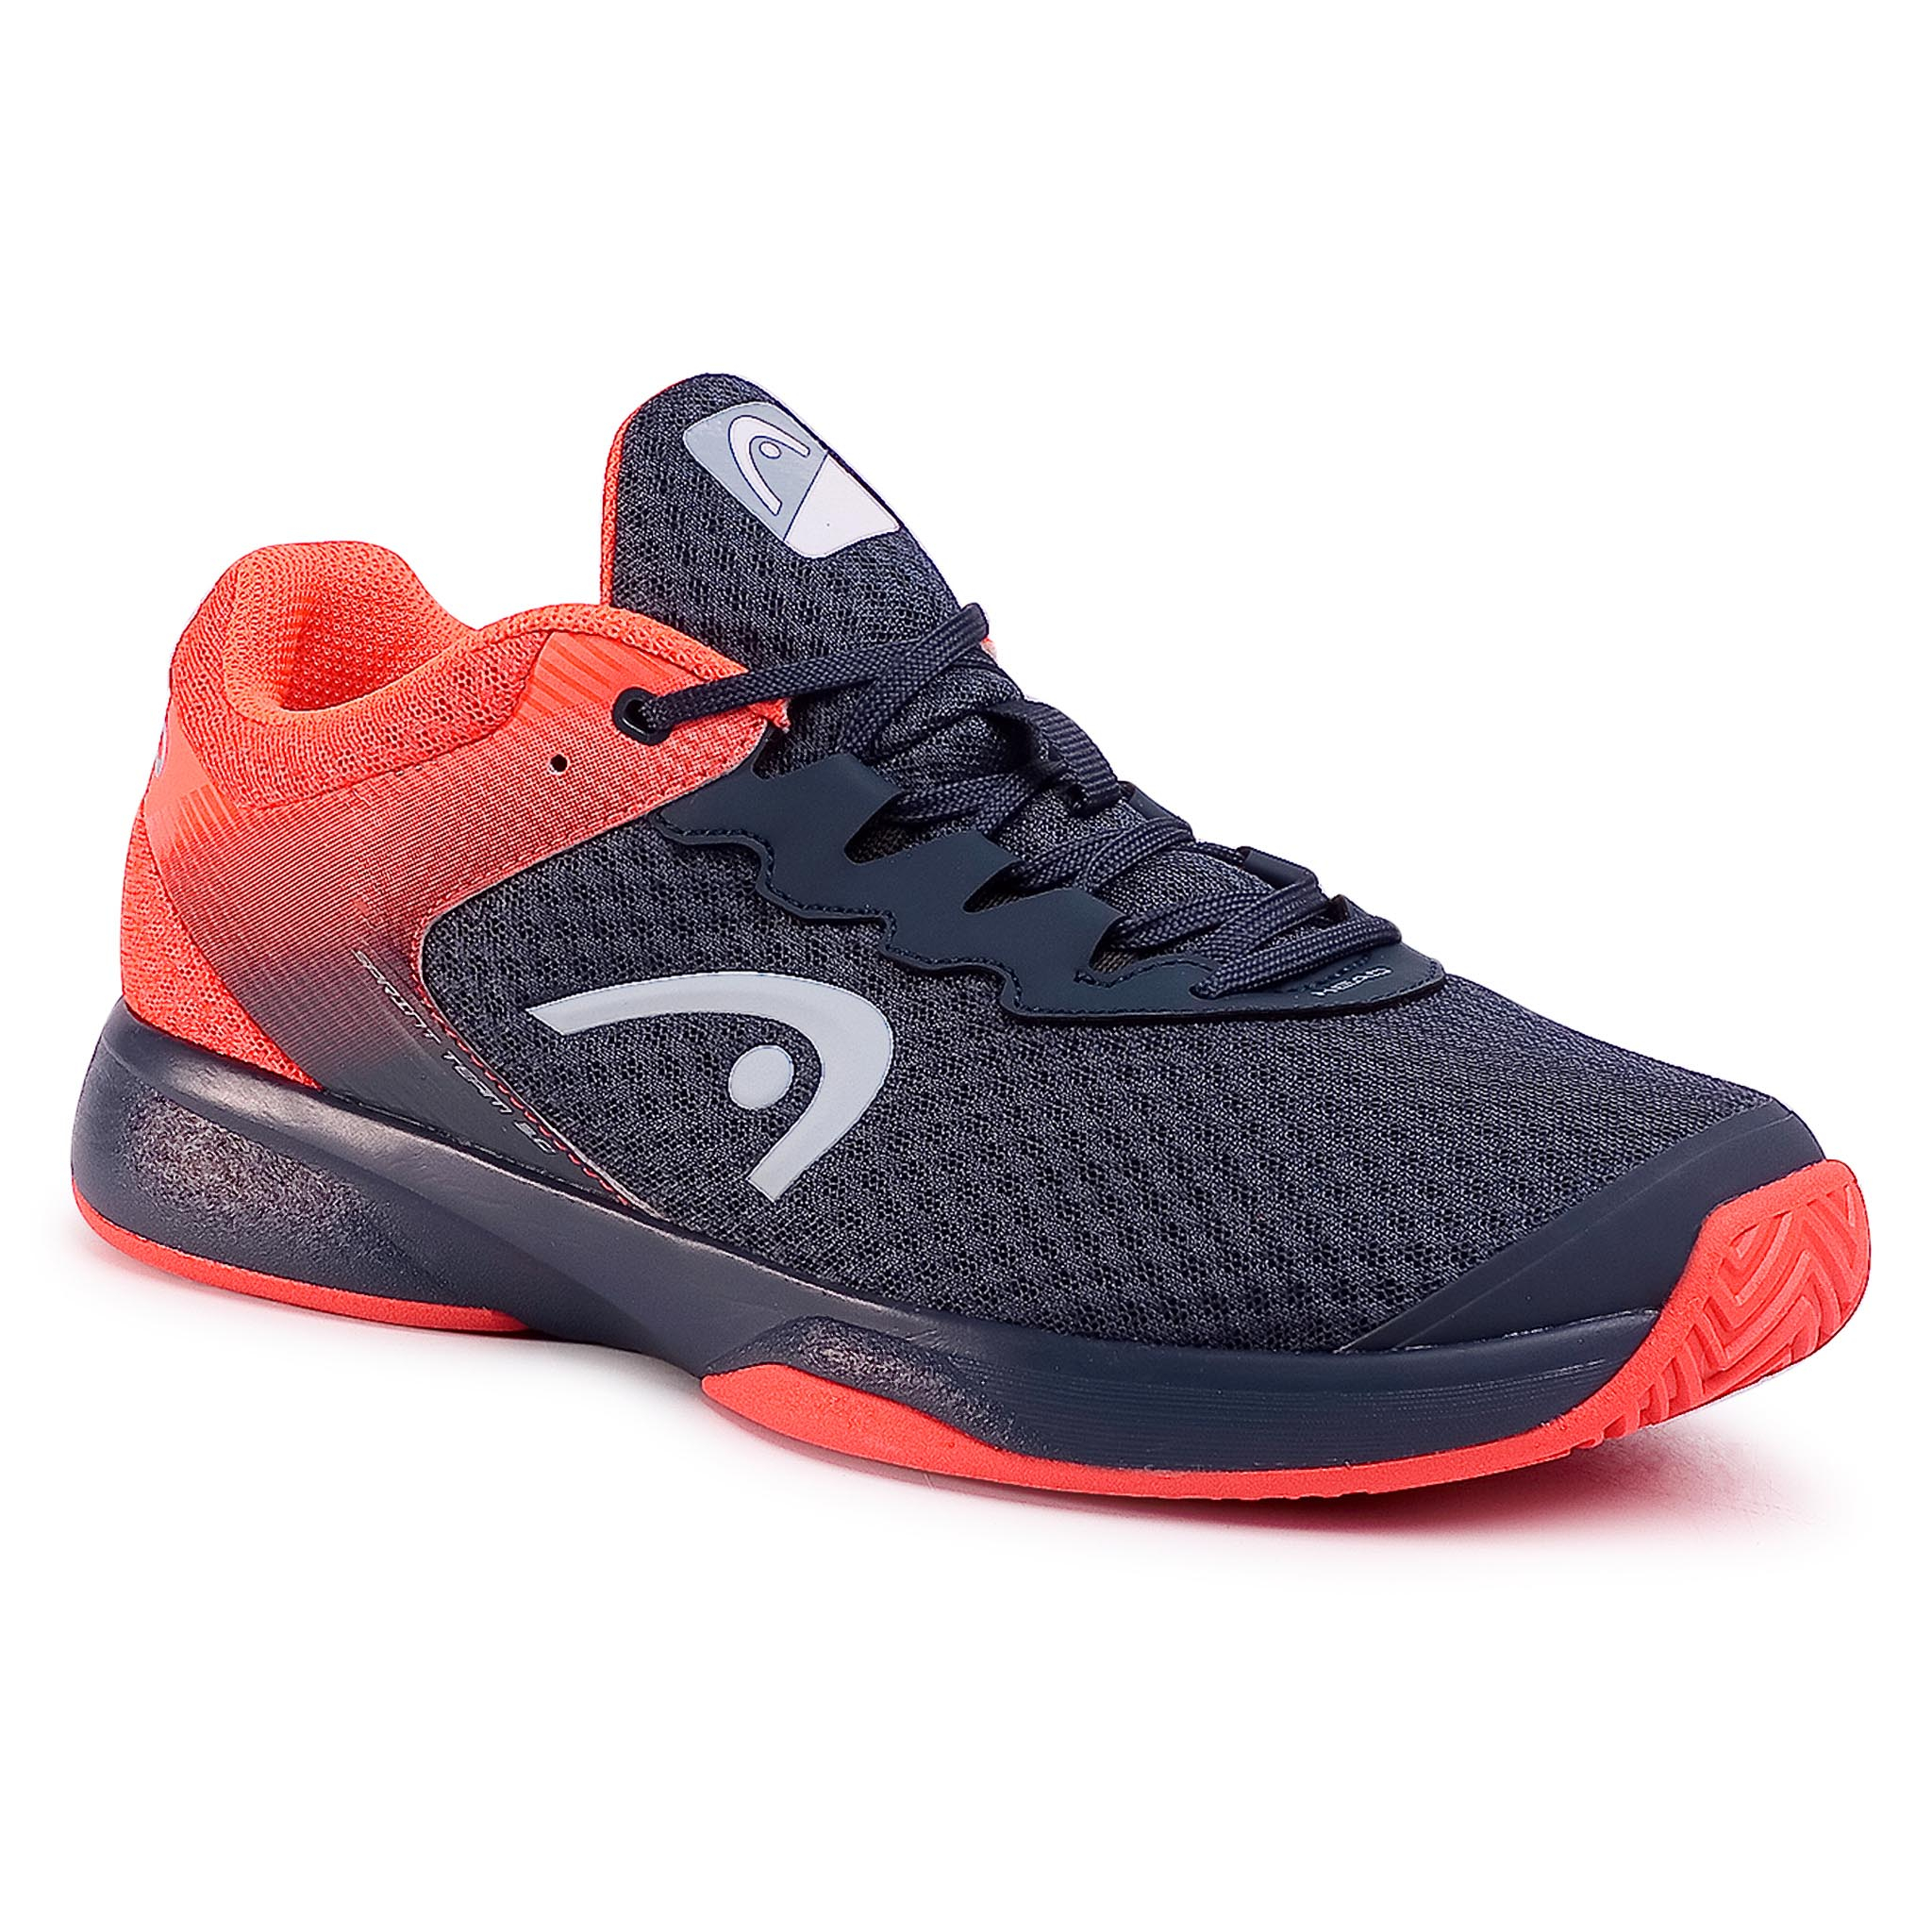 Pantofi Head - Sprint Team 3.0 273300 Midnight Navy/Neon Red 075 imagine epantofi.ro 2021